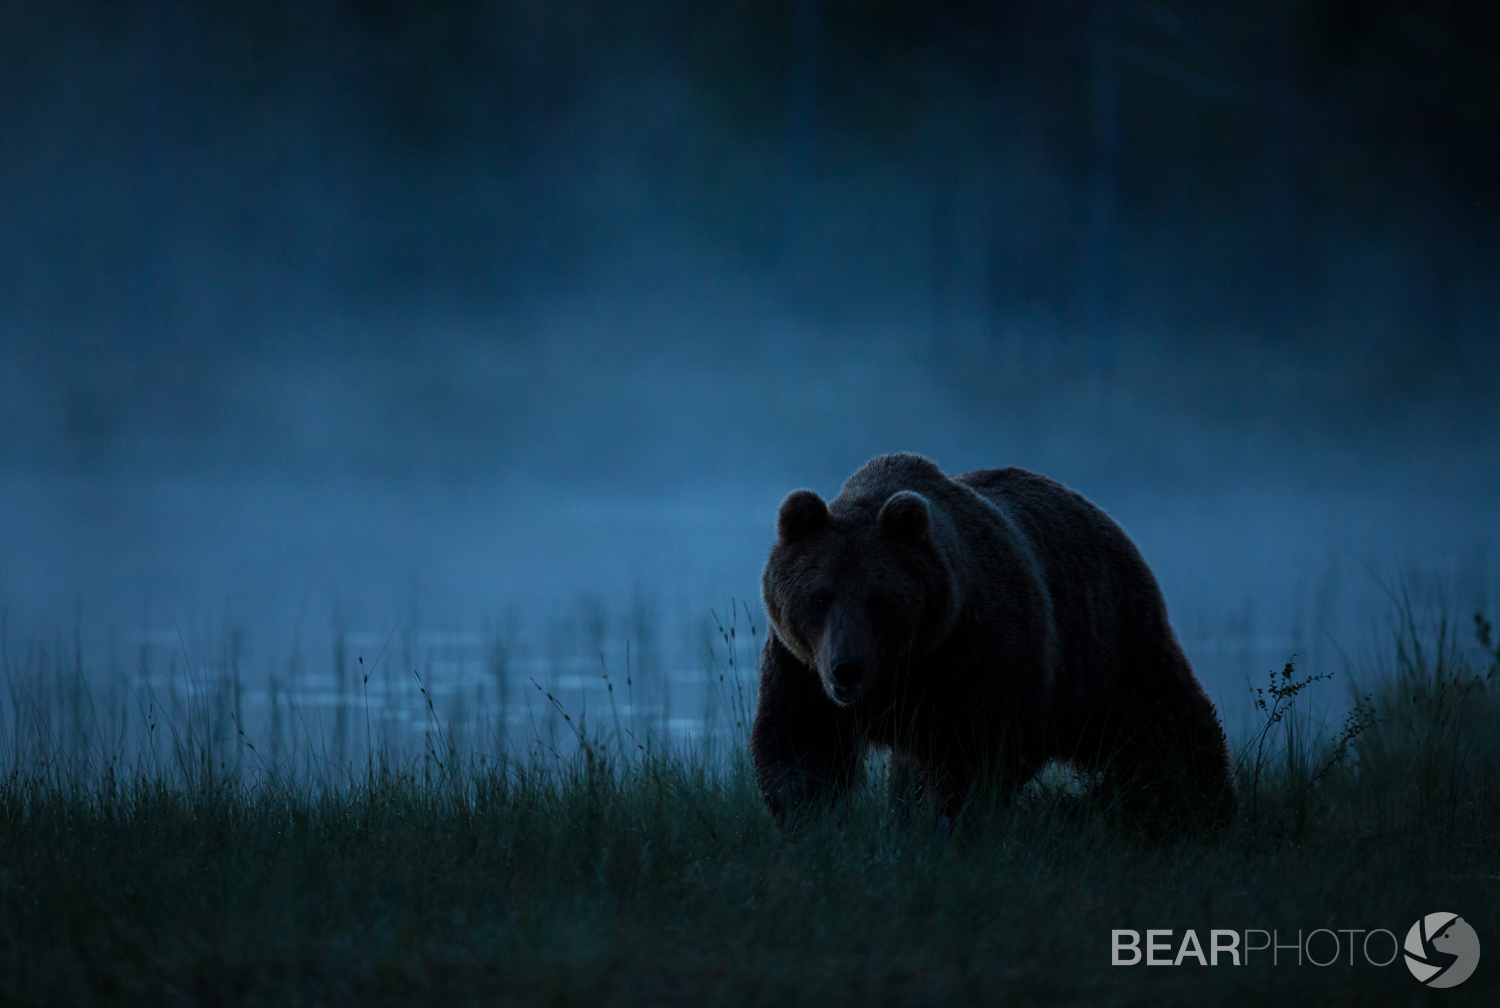 Brown bear tour in Finland